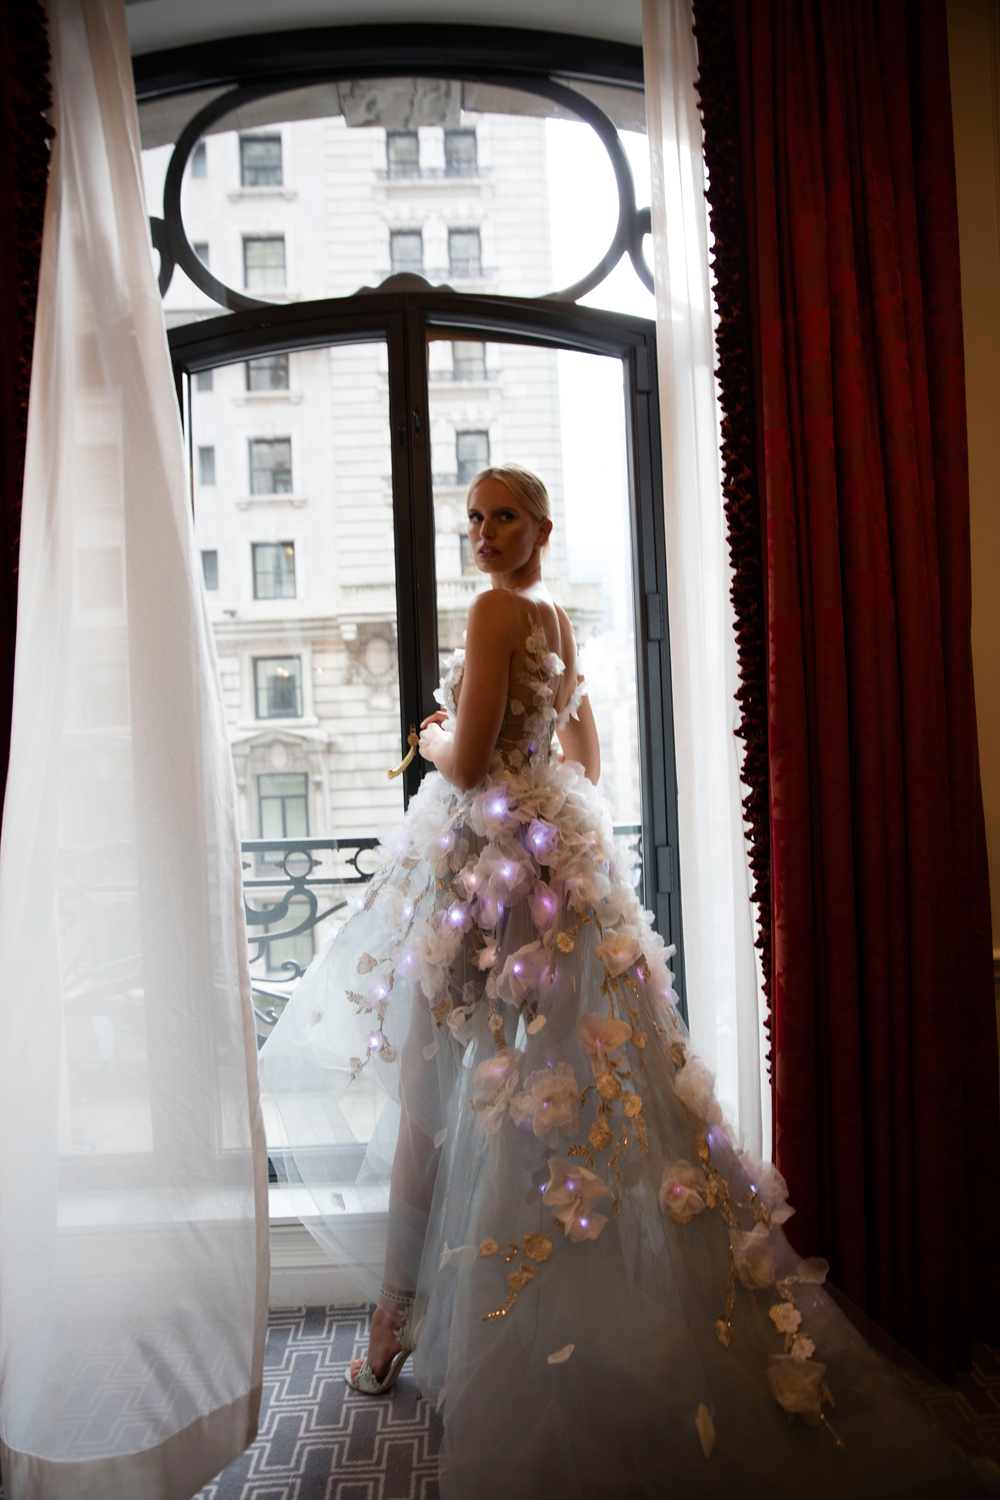 Karolina Kurkova in a Marchesa gown with flowers that light up.